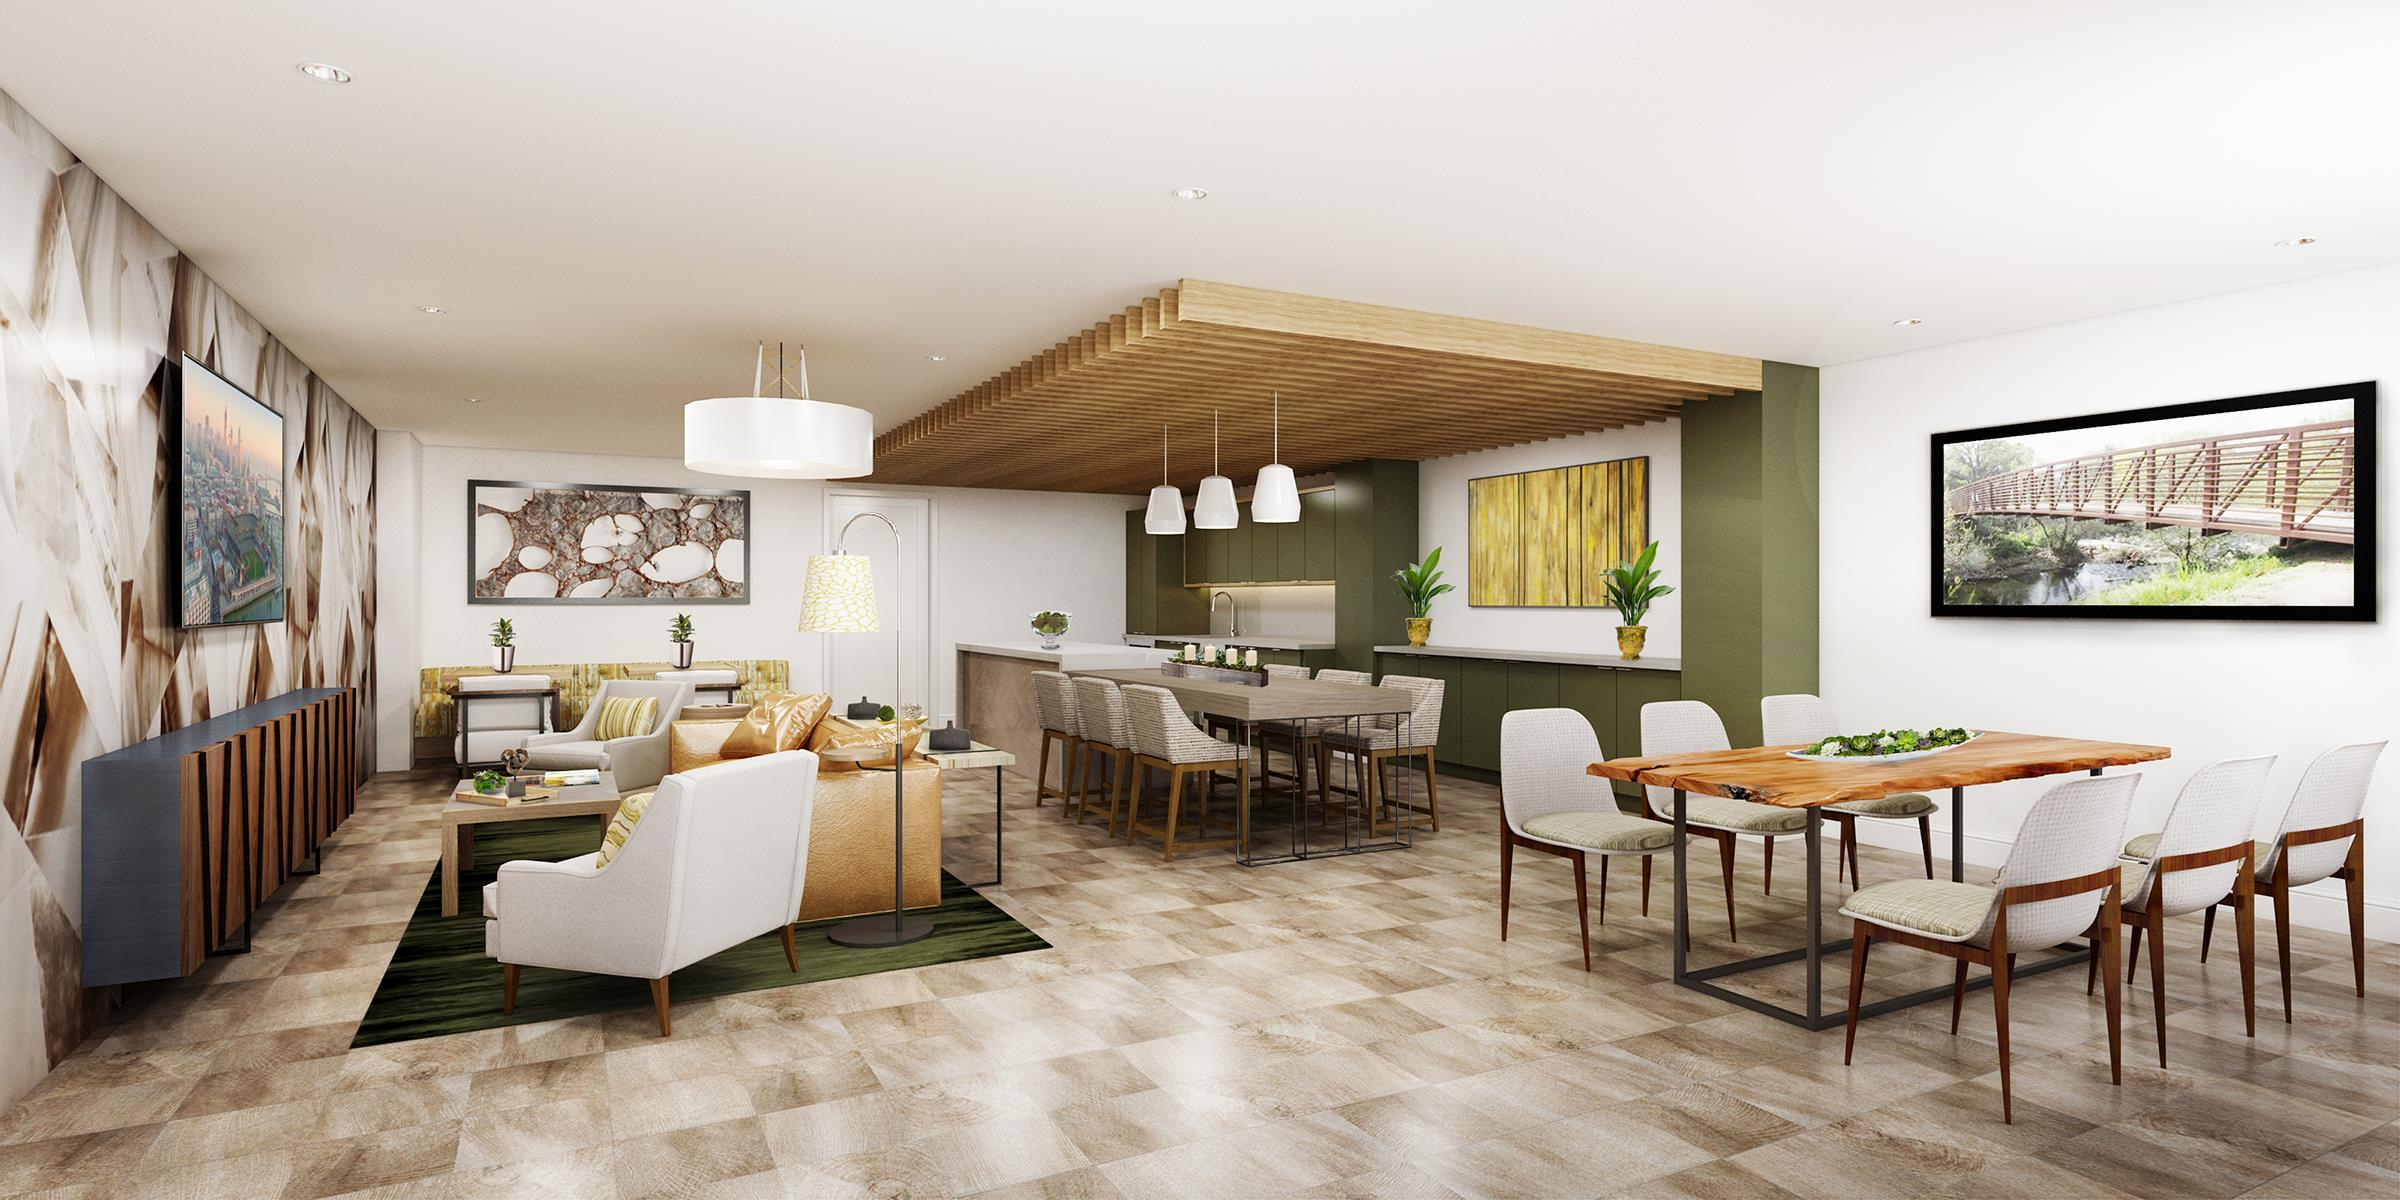 Living Area featured in the Almaden B1-V4 By The Almaden  in San Jose, CA